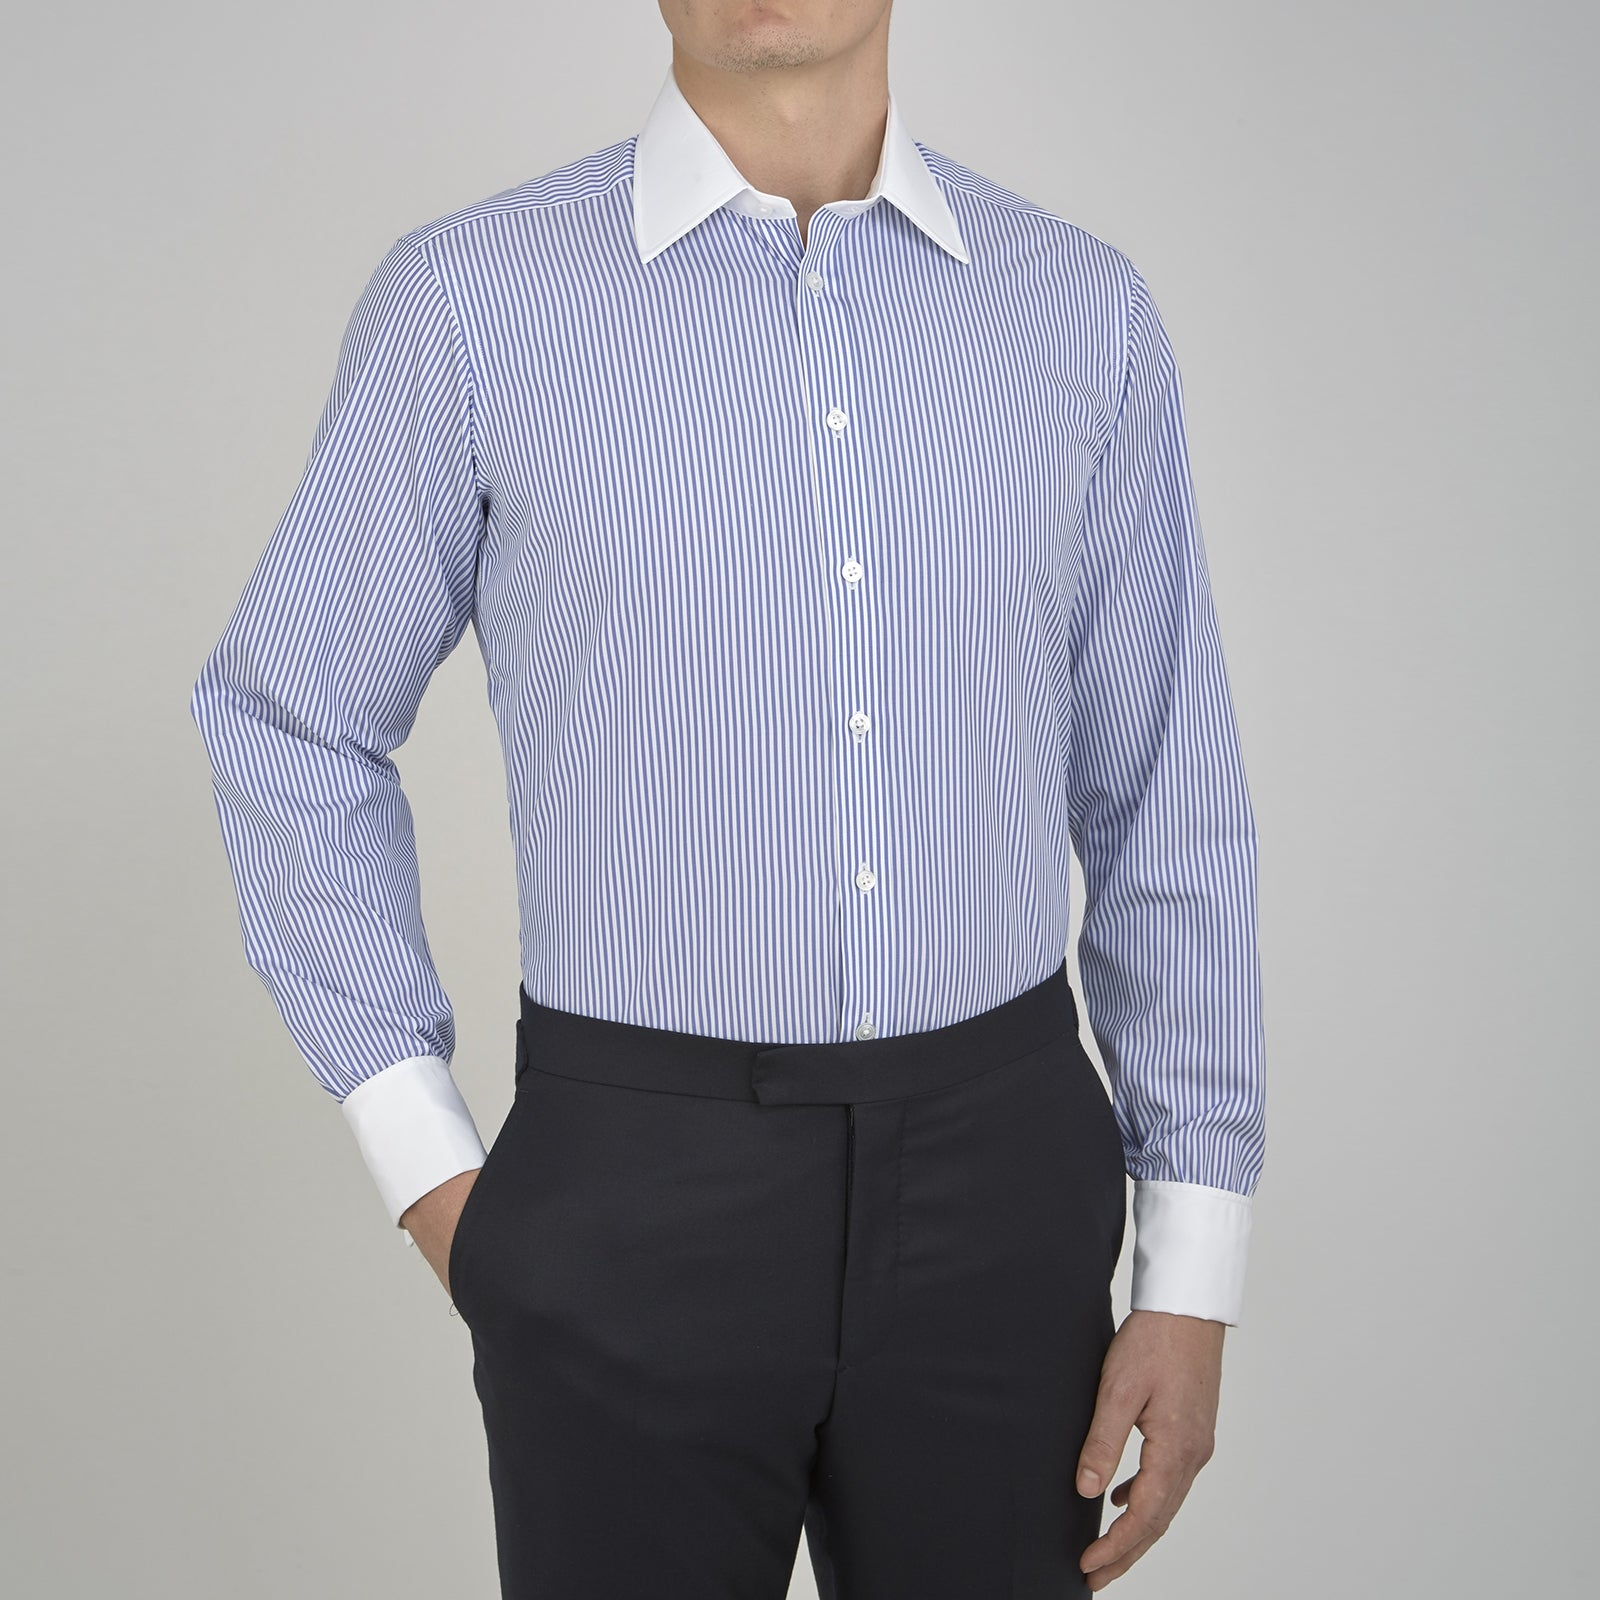 The Gekko Shirt with White Classic T&A Collar and Double Cuffs